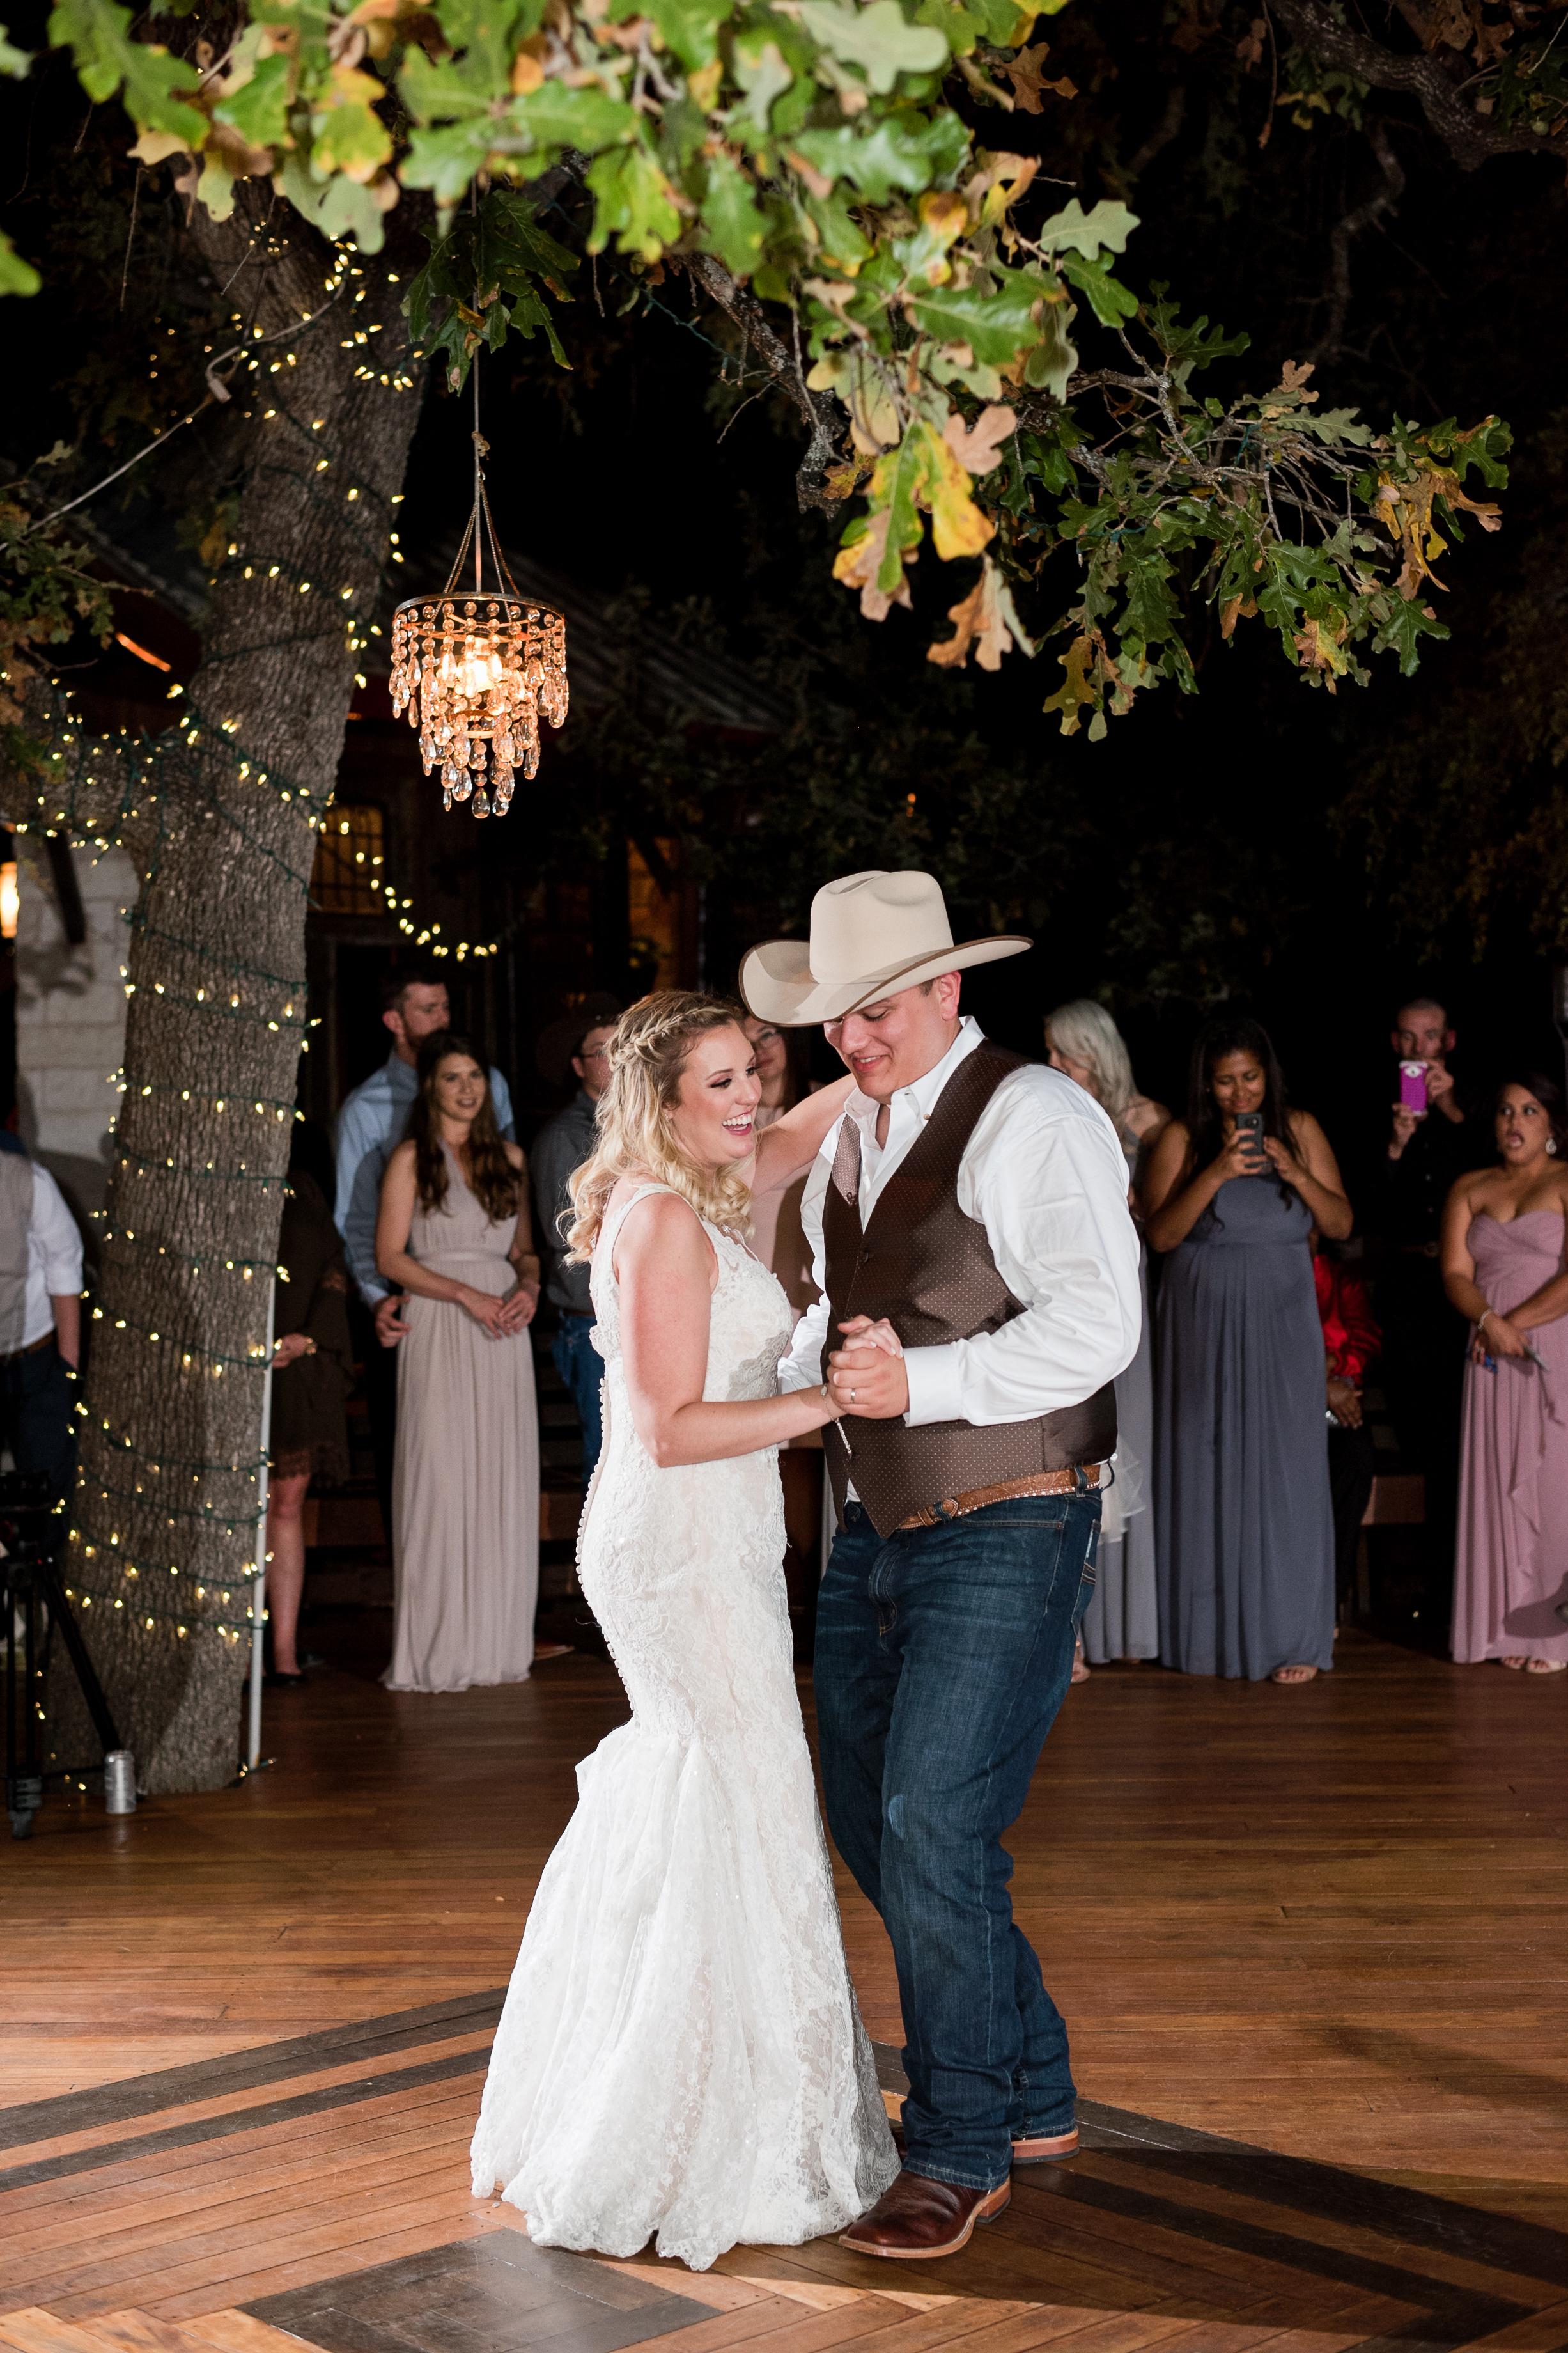 A bride and groom hold hands and dance on the wooden dance floor in Georgetown, Texas at their outdoor wedding.